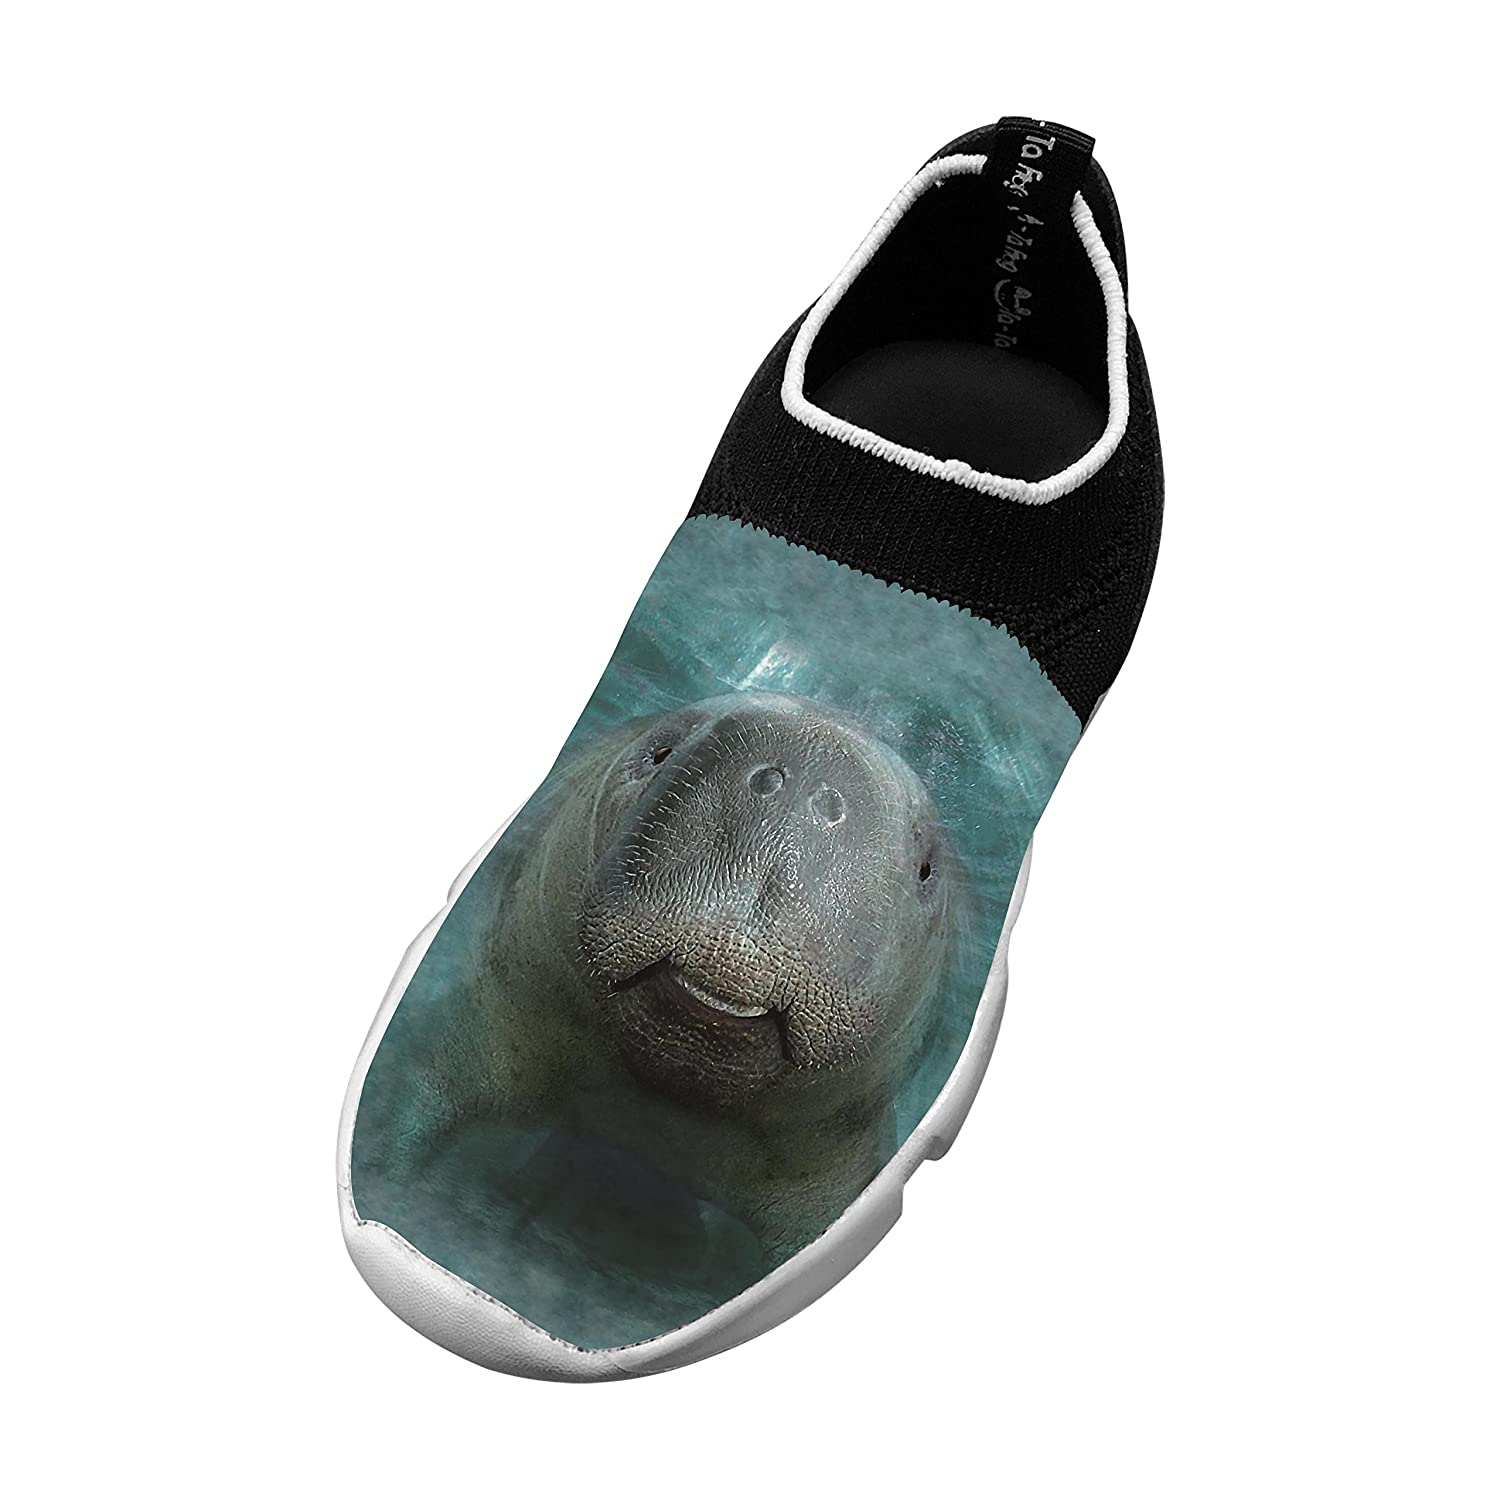 New Trendy Flywire Knitting Leisure Shoes 3D Create My Own With Big Face Manatee For Boy Girl